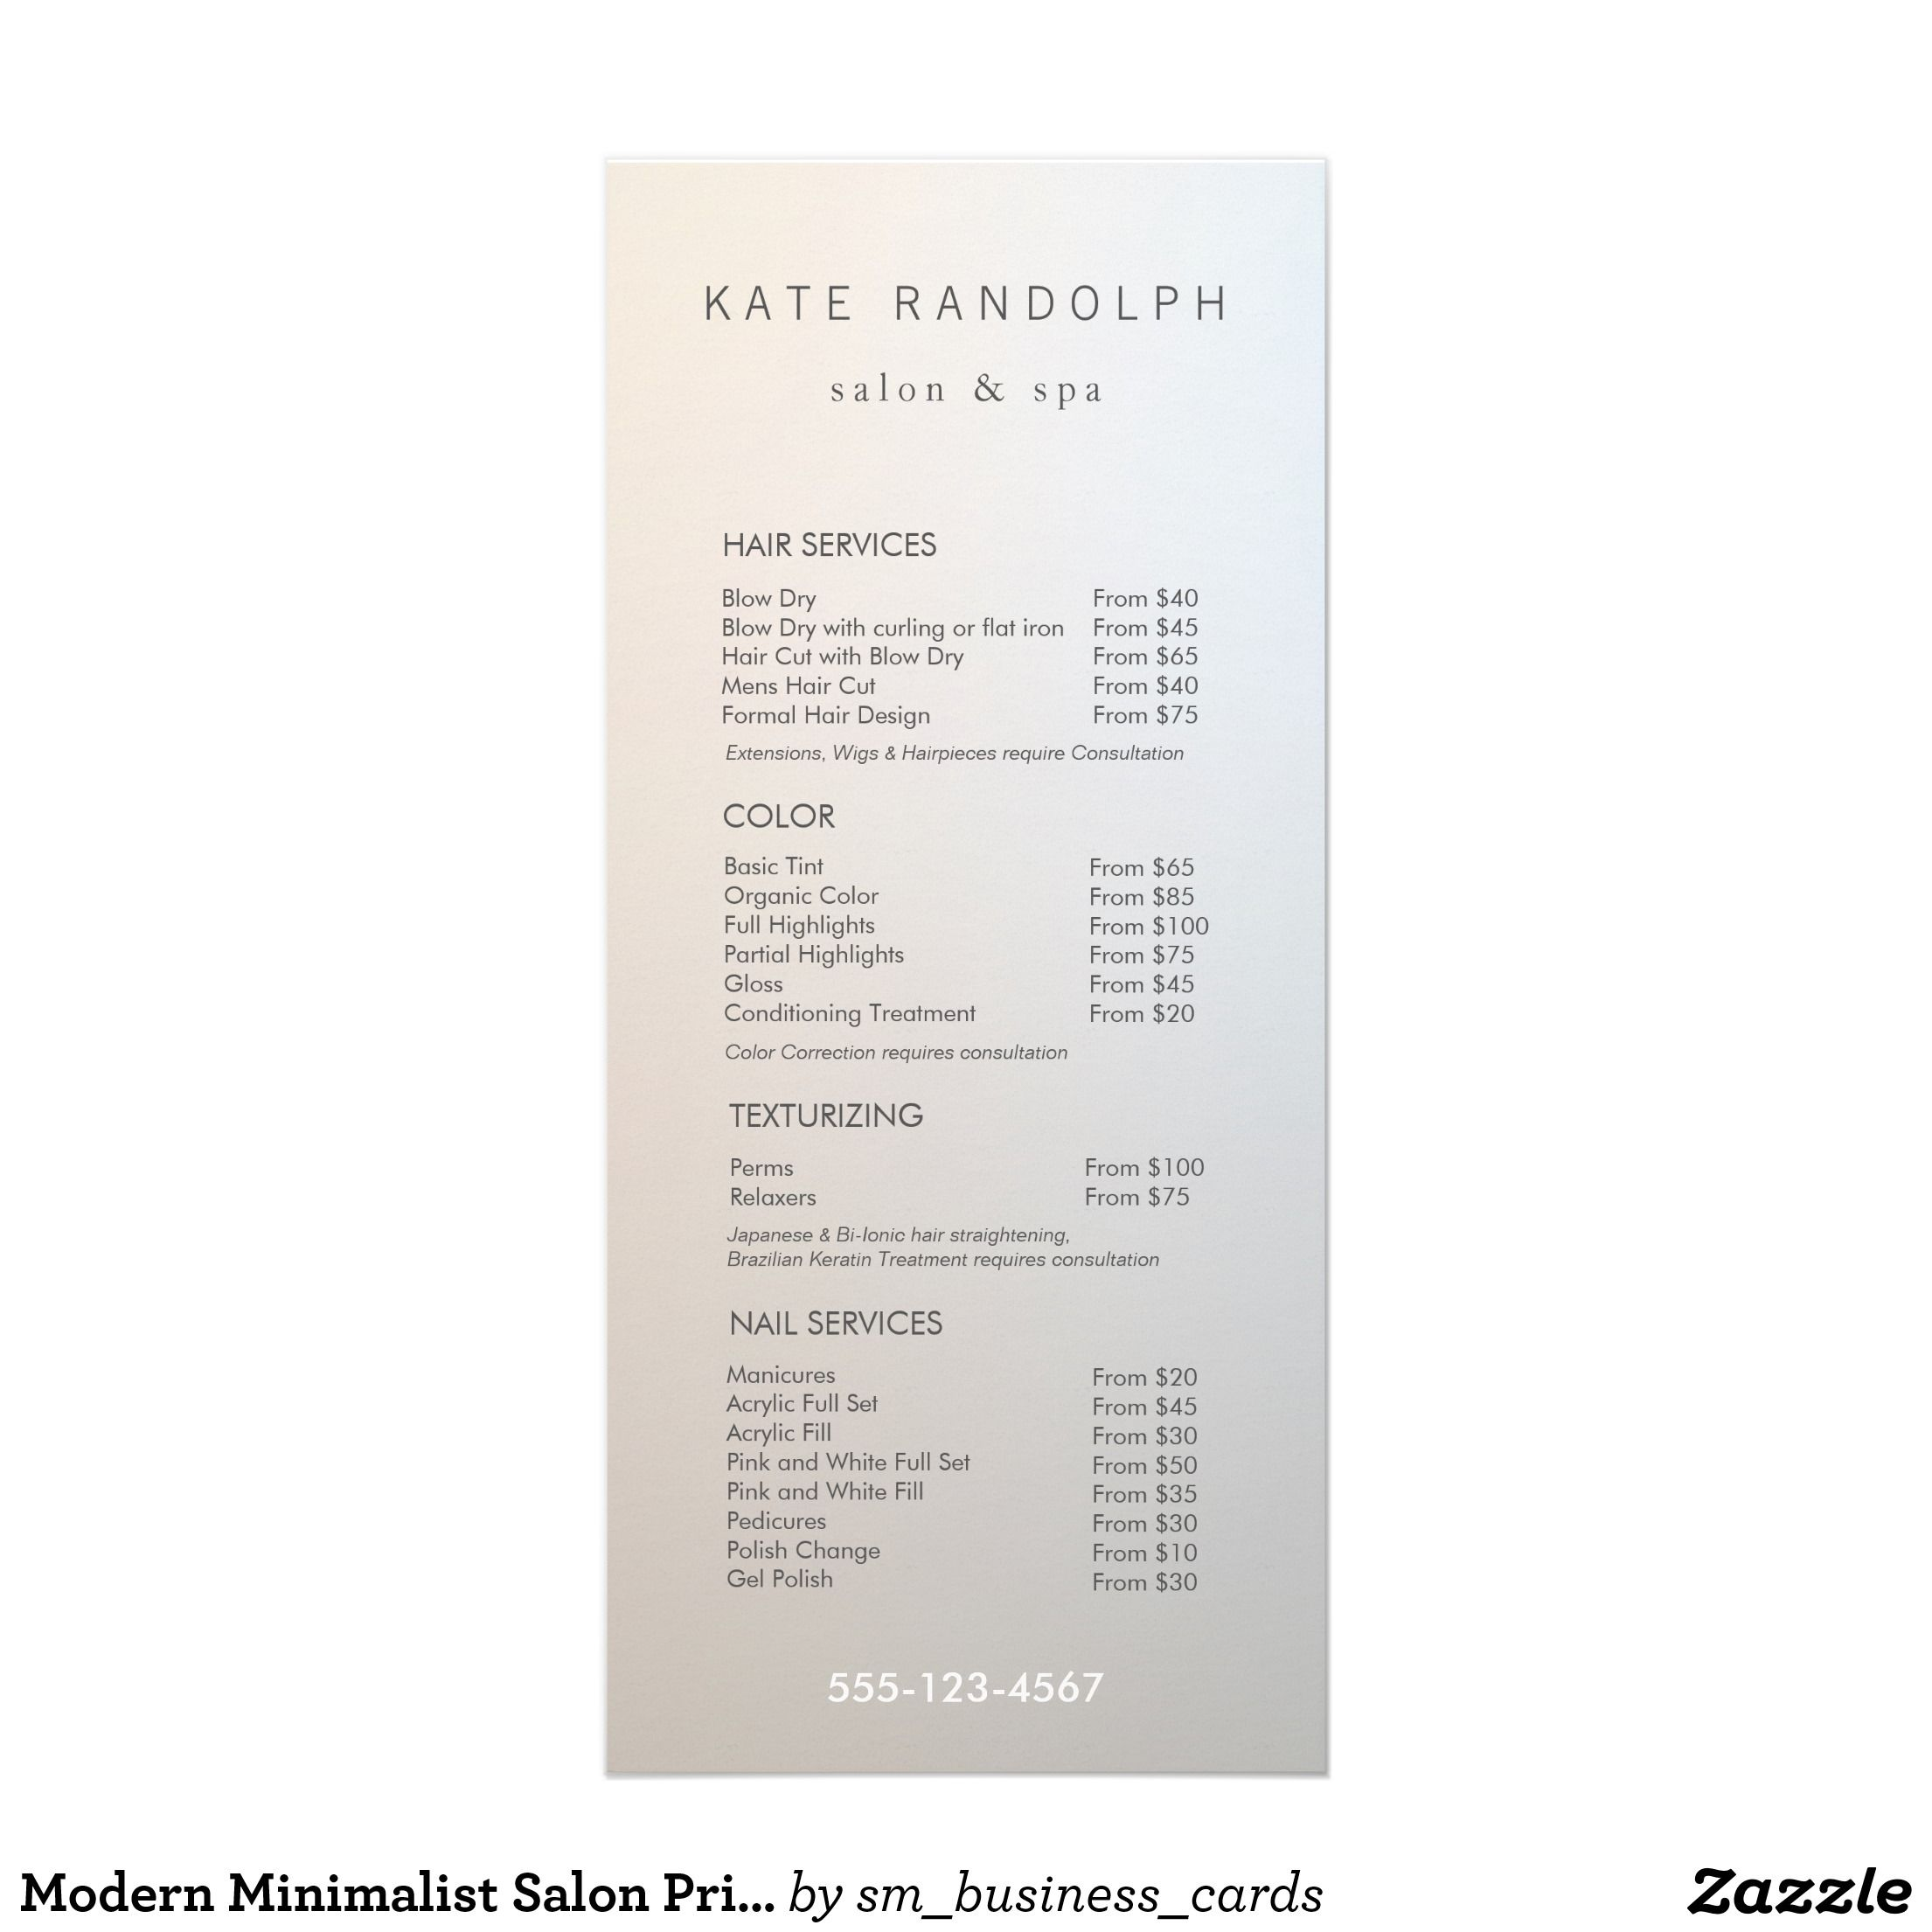 Beauty Salon Prices Modern Minimalist Salon Price List Service Menu Zazzle